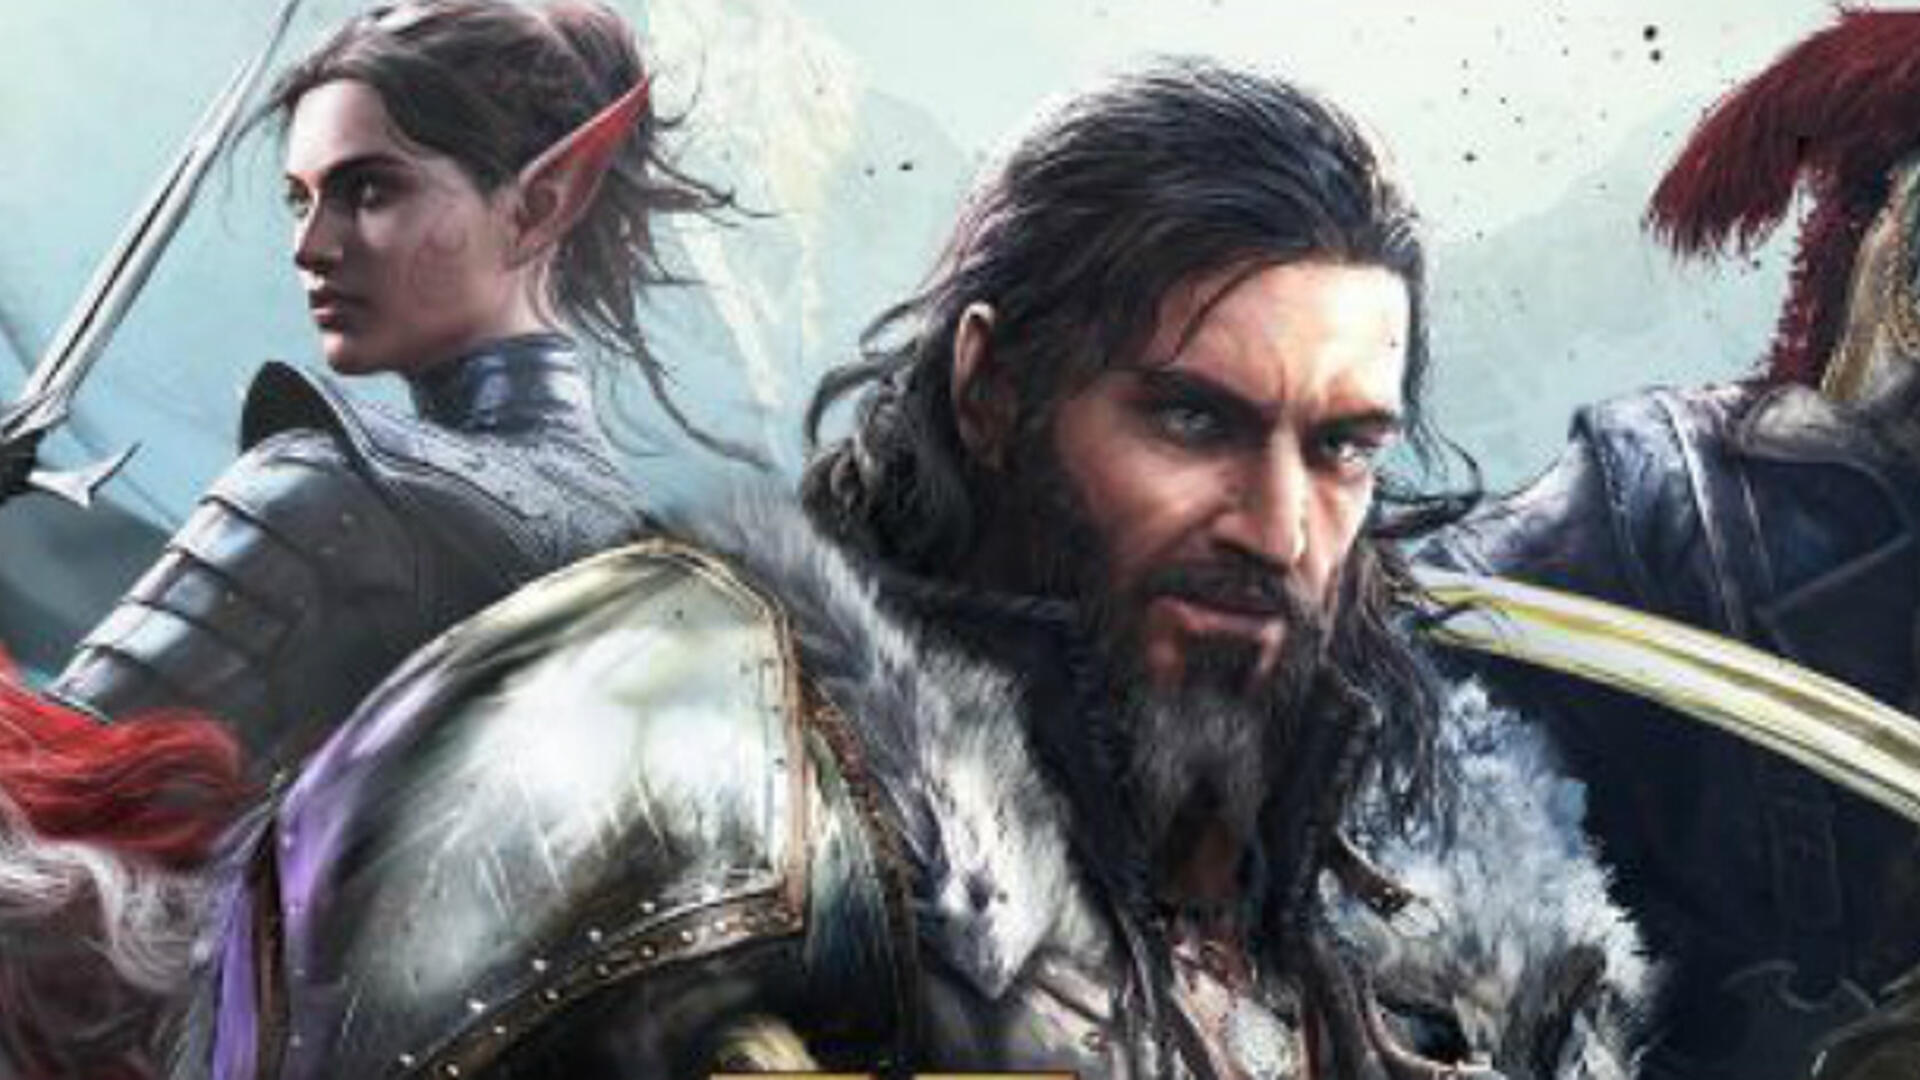 Divinity Original Sin 2: Definitive Edition Includes Overhaul of Arx Story Chapter, Easy Mode for Newbies